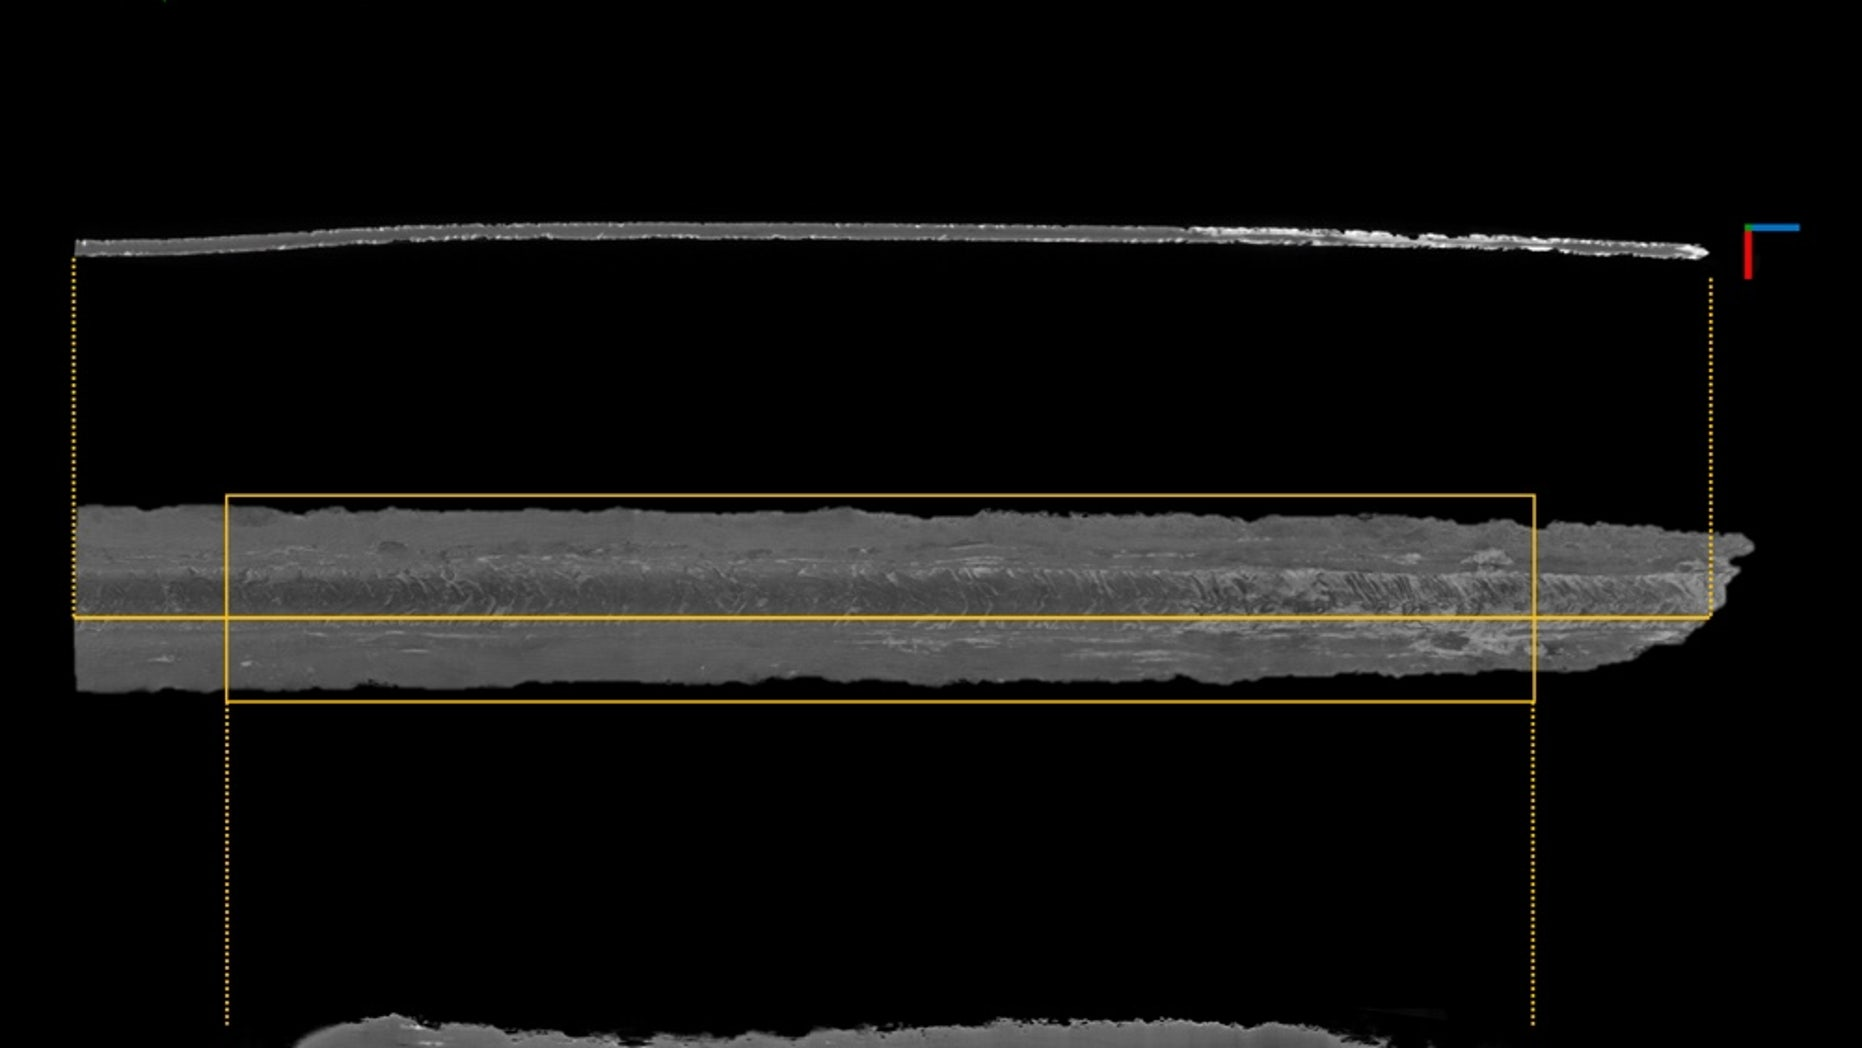 Researchers analyzed three Viking swords: The orange rectangle shows the area investigated. The center image is a 3D rendering created from scans of the sword, with corrosion shown in white.